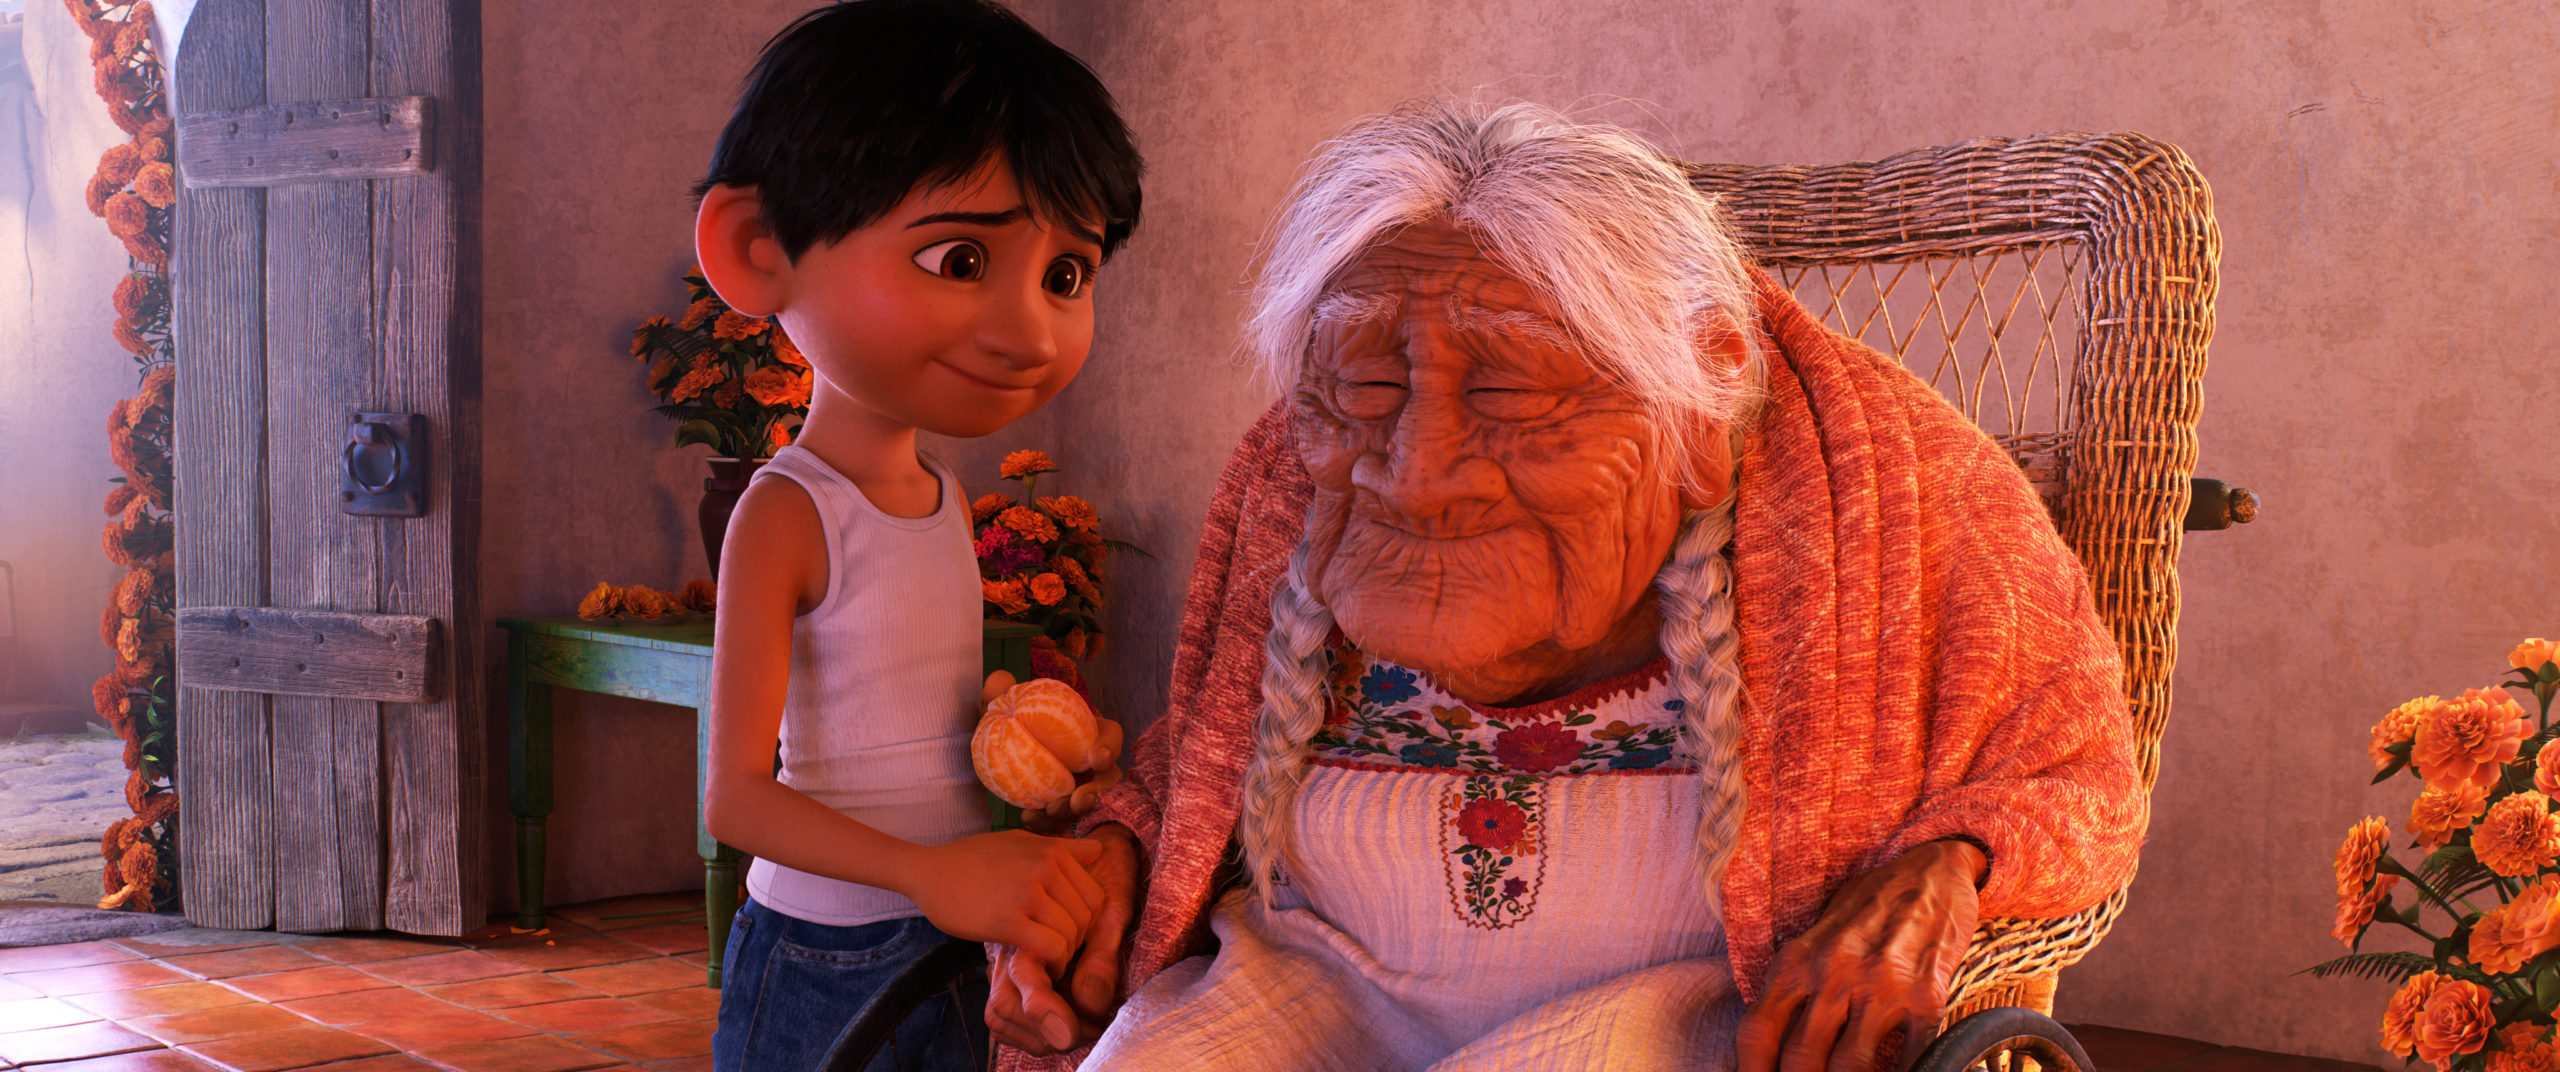 """COCO (Pictured) - FAMILY BONDS - In Disney•Pixar's""""Coco,"""" Miguel (voice of Anthony Gonzalez) has a very special relationship with his great-great-grandmother, Mamá Coco (voice of Ana Ofelia Murguía). Directed by Lee Unkrich and co-directed by Adrian Molina, Disney•Pixar's""""Coco,"""" opens in U.S. theaters on Nov. 22, 2017. ©2017 Disney•Pixar. All Rights Reserved."""